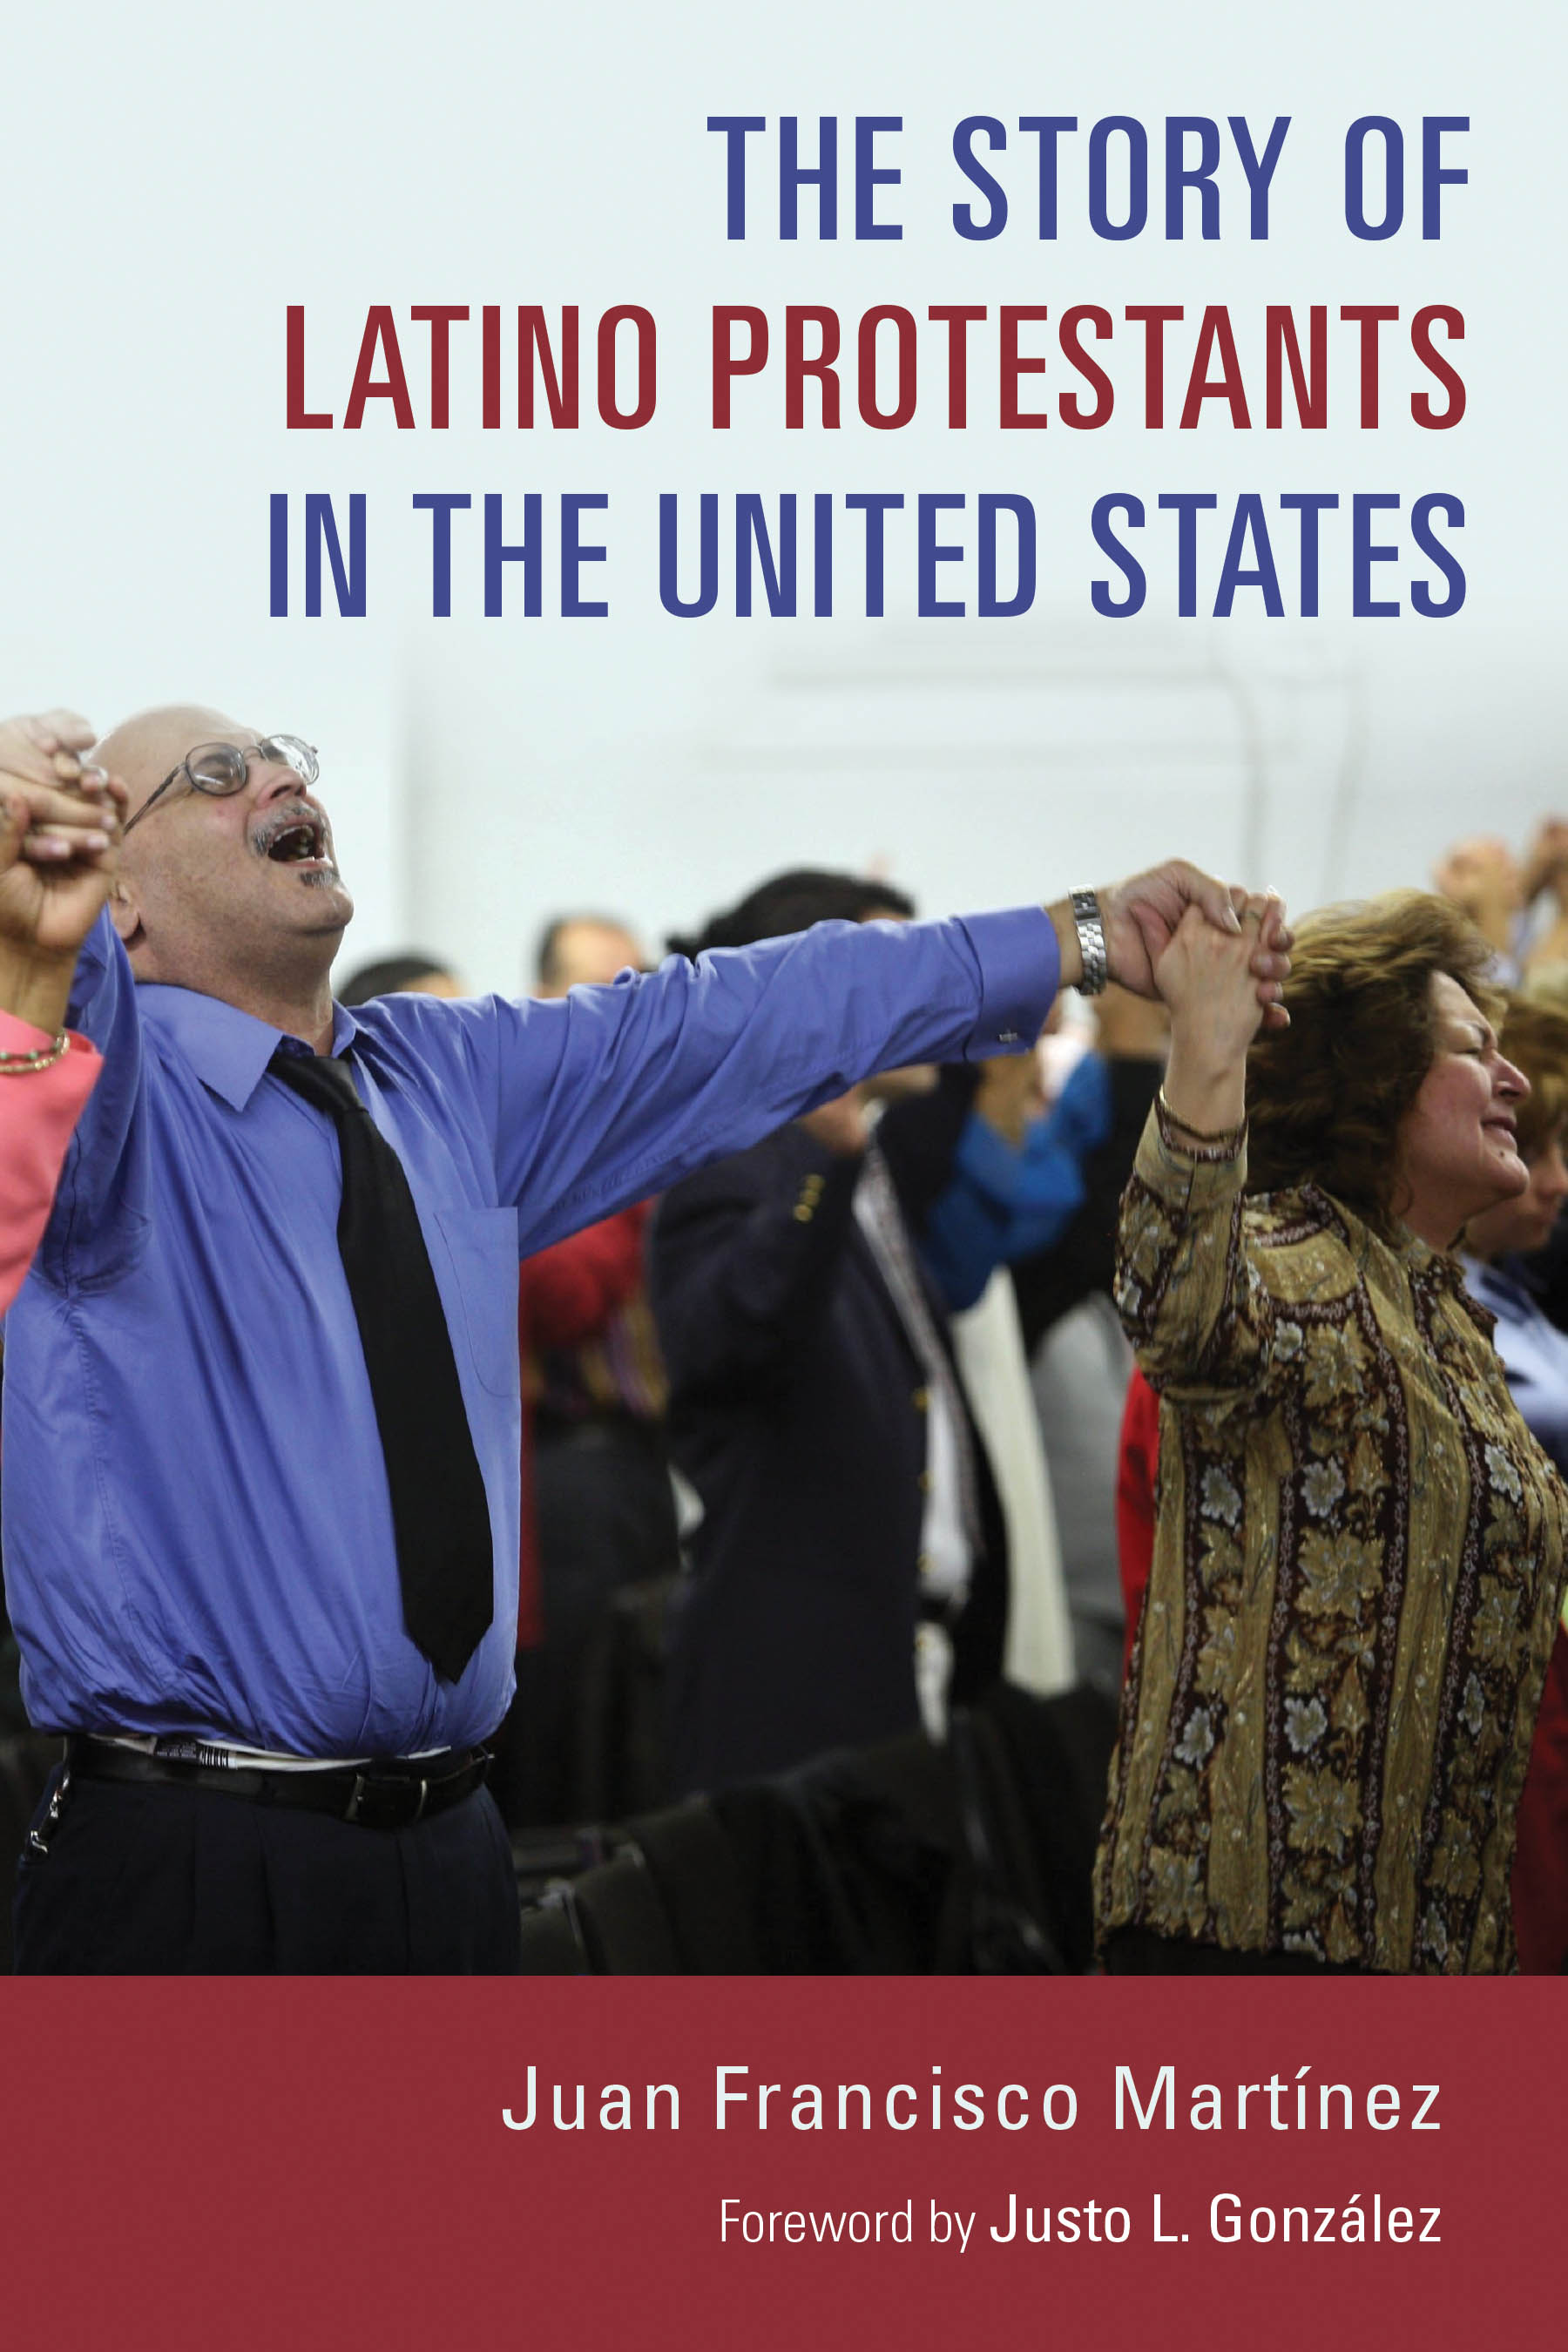 the story of latino protestants in the united states juan